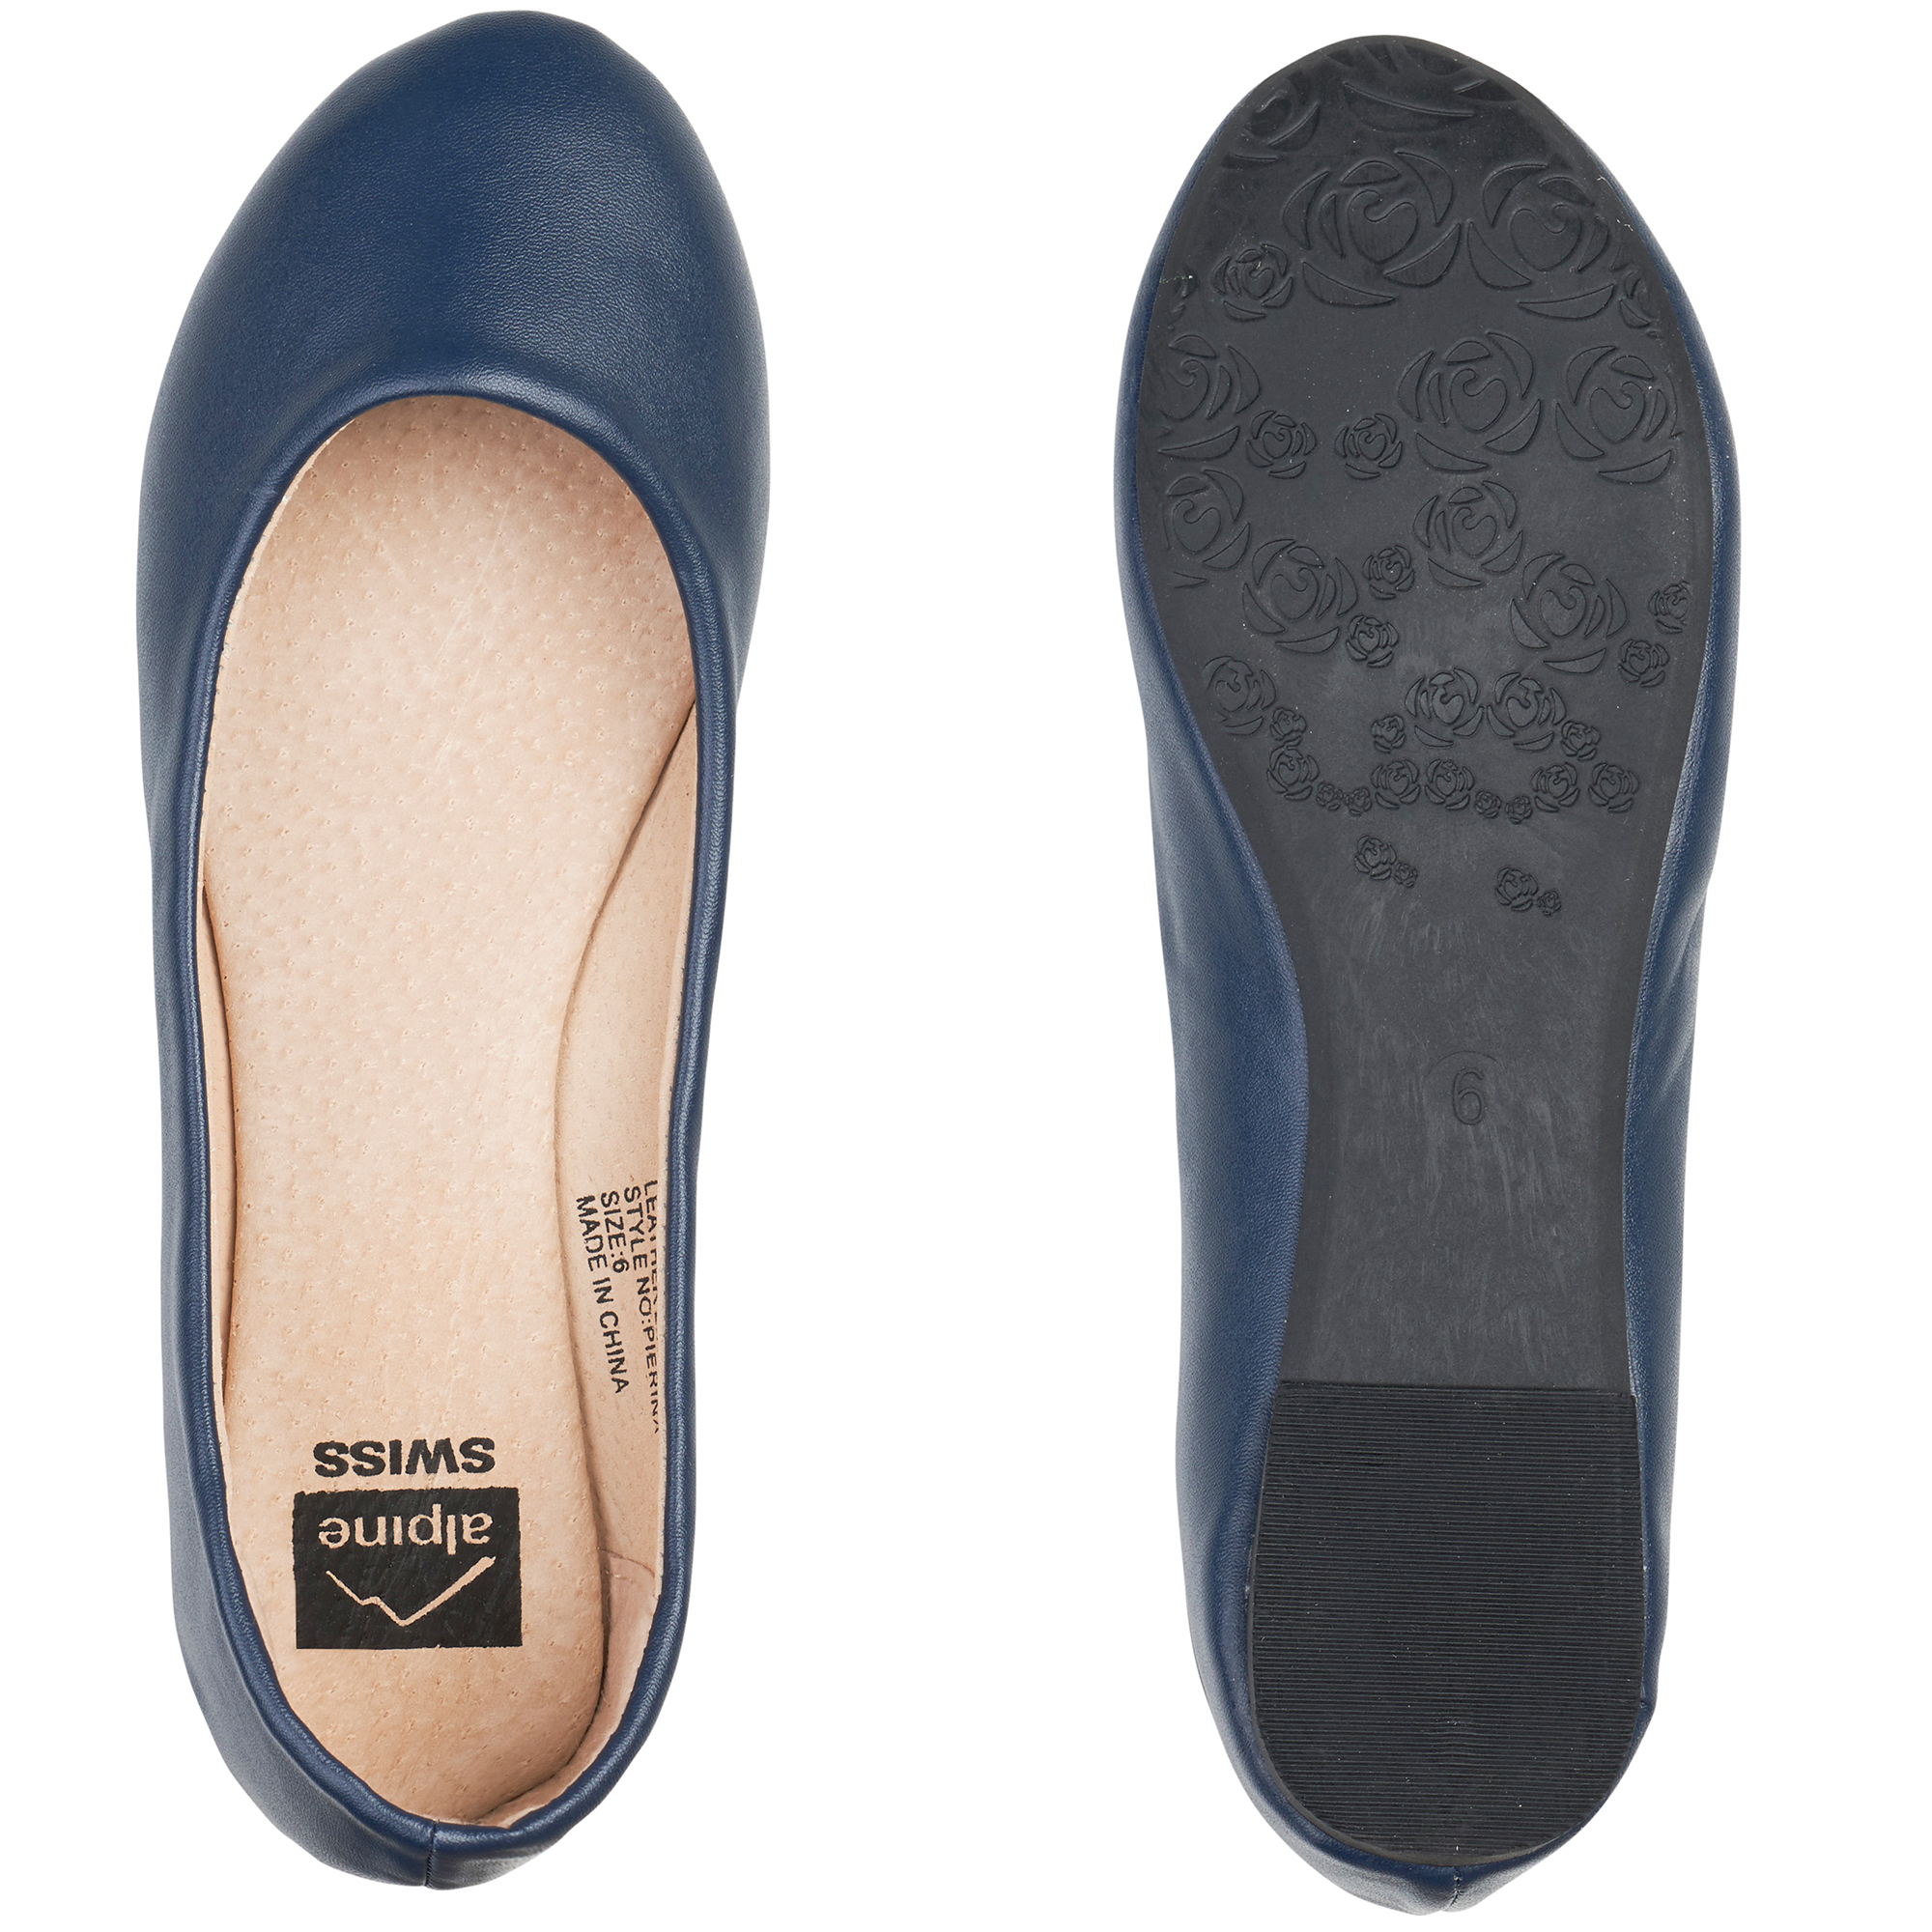 Alpine-Swiss-Pierina-Womens-Ballet-Flats-Leather-Lined-Classic-Slip-On-Shoes thumbnail 76